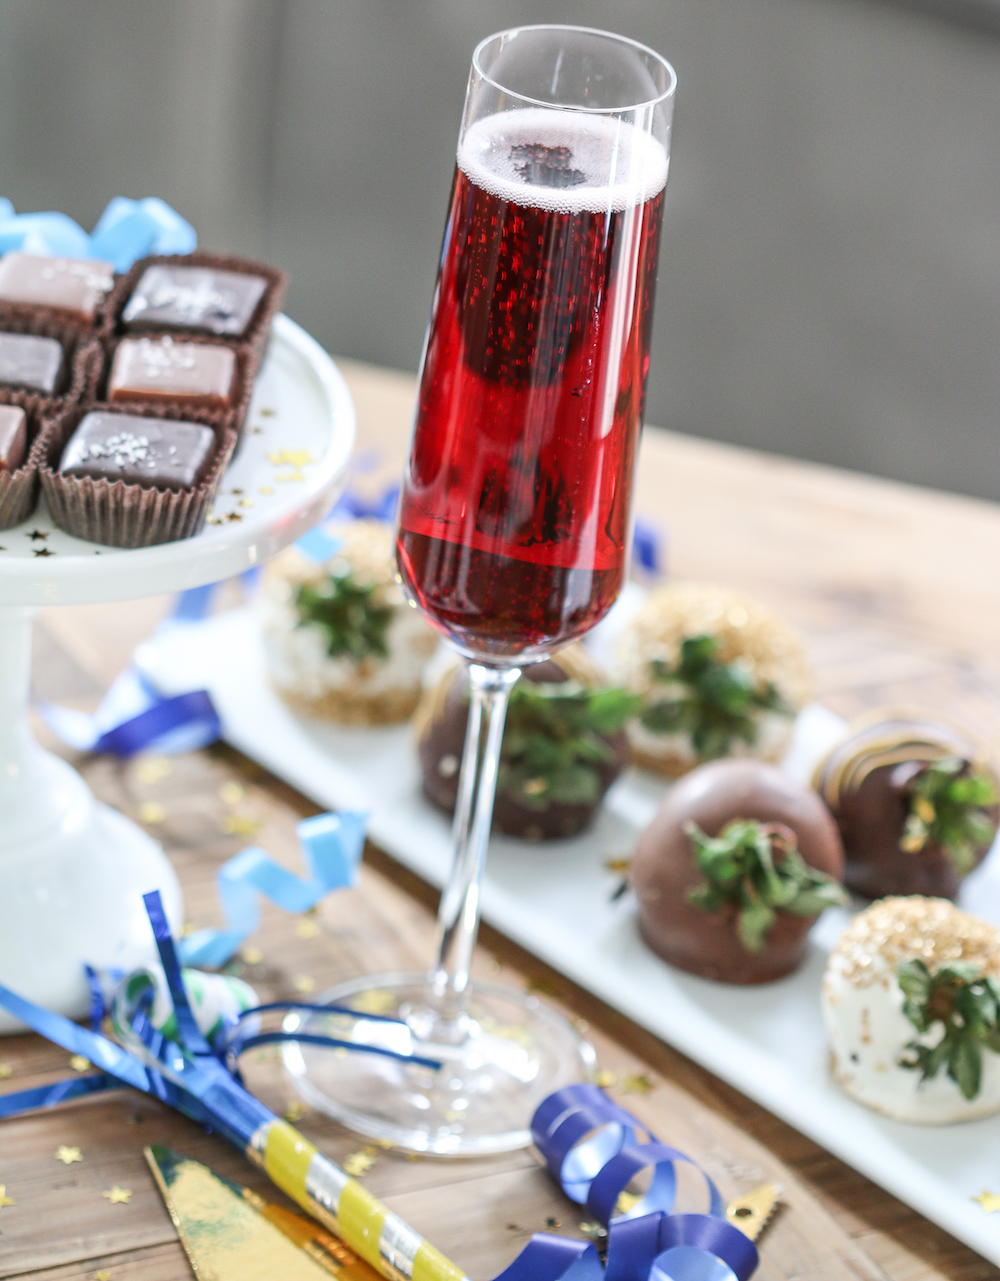 Oscar Party Ideas for a Fabulous Get-Together - Make Signature Drinks